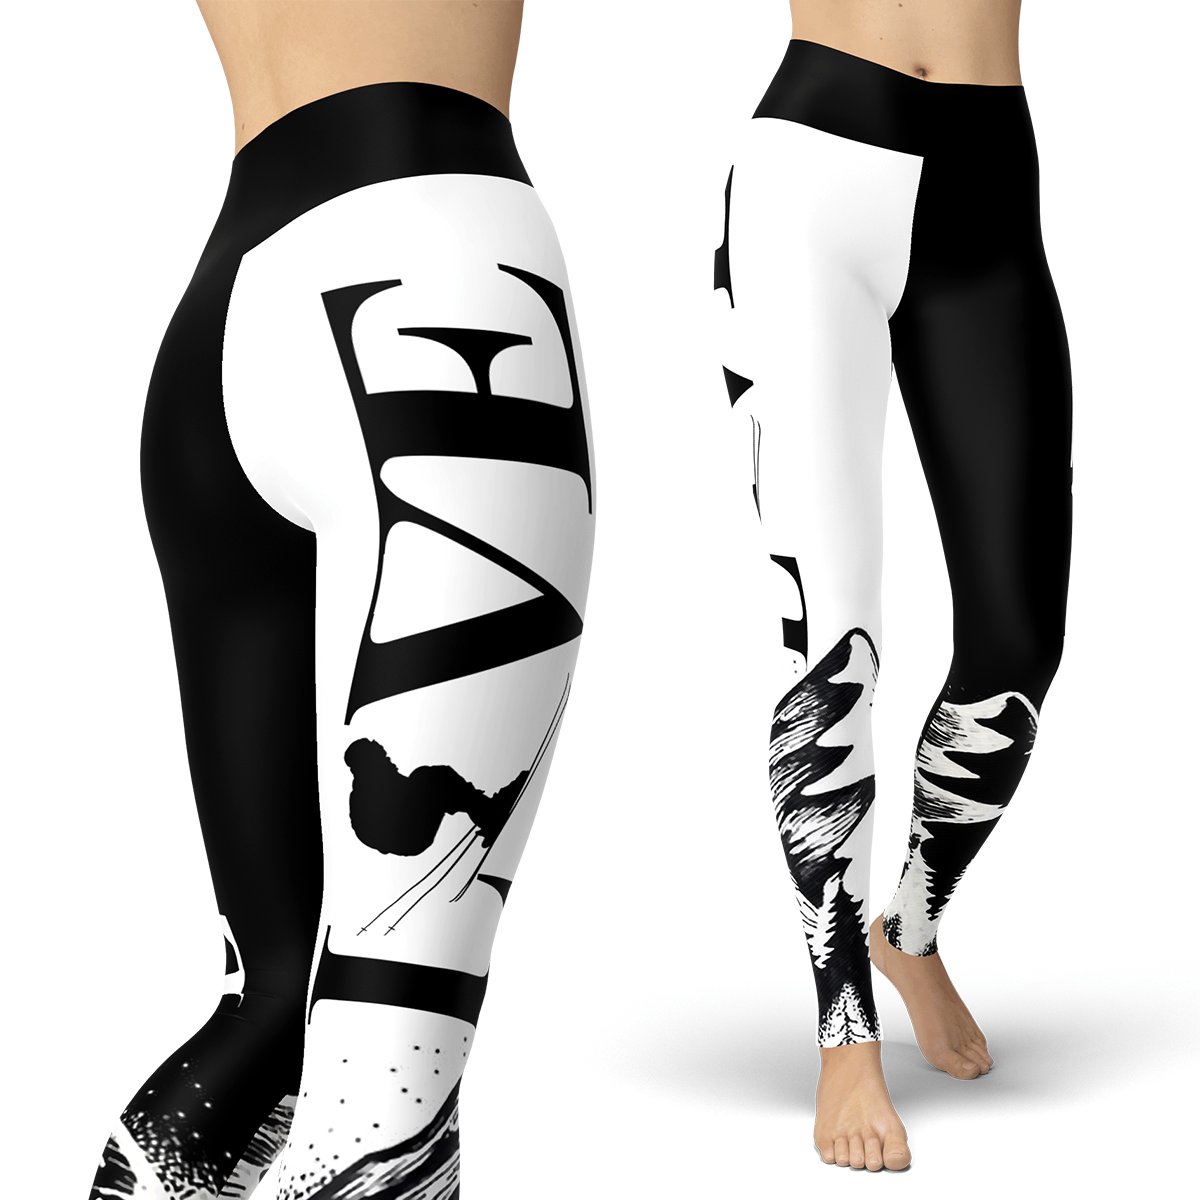 Love Skiing Leggings - Powderaddicts